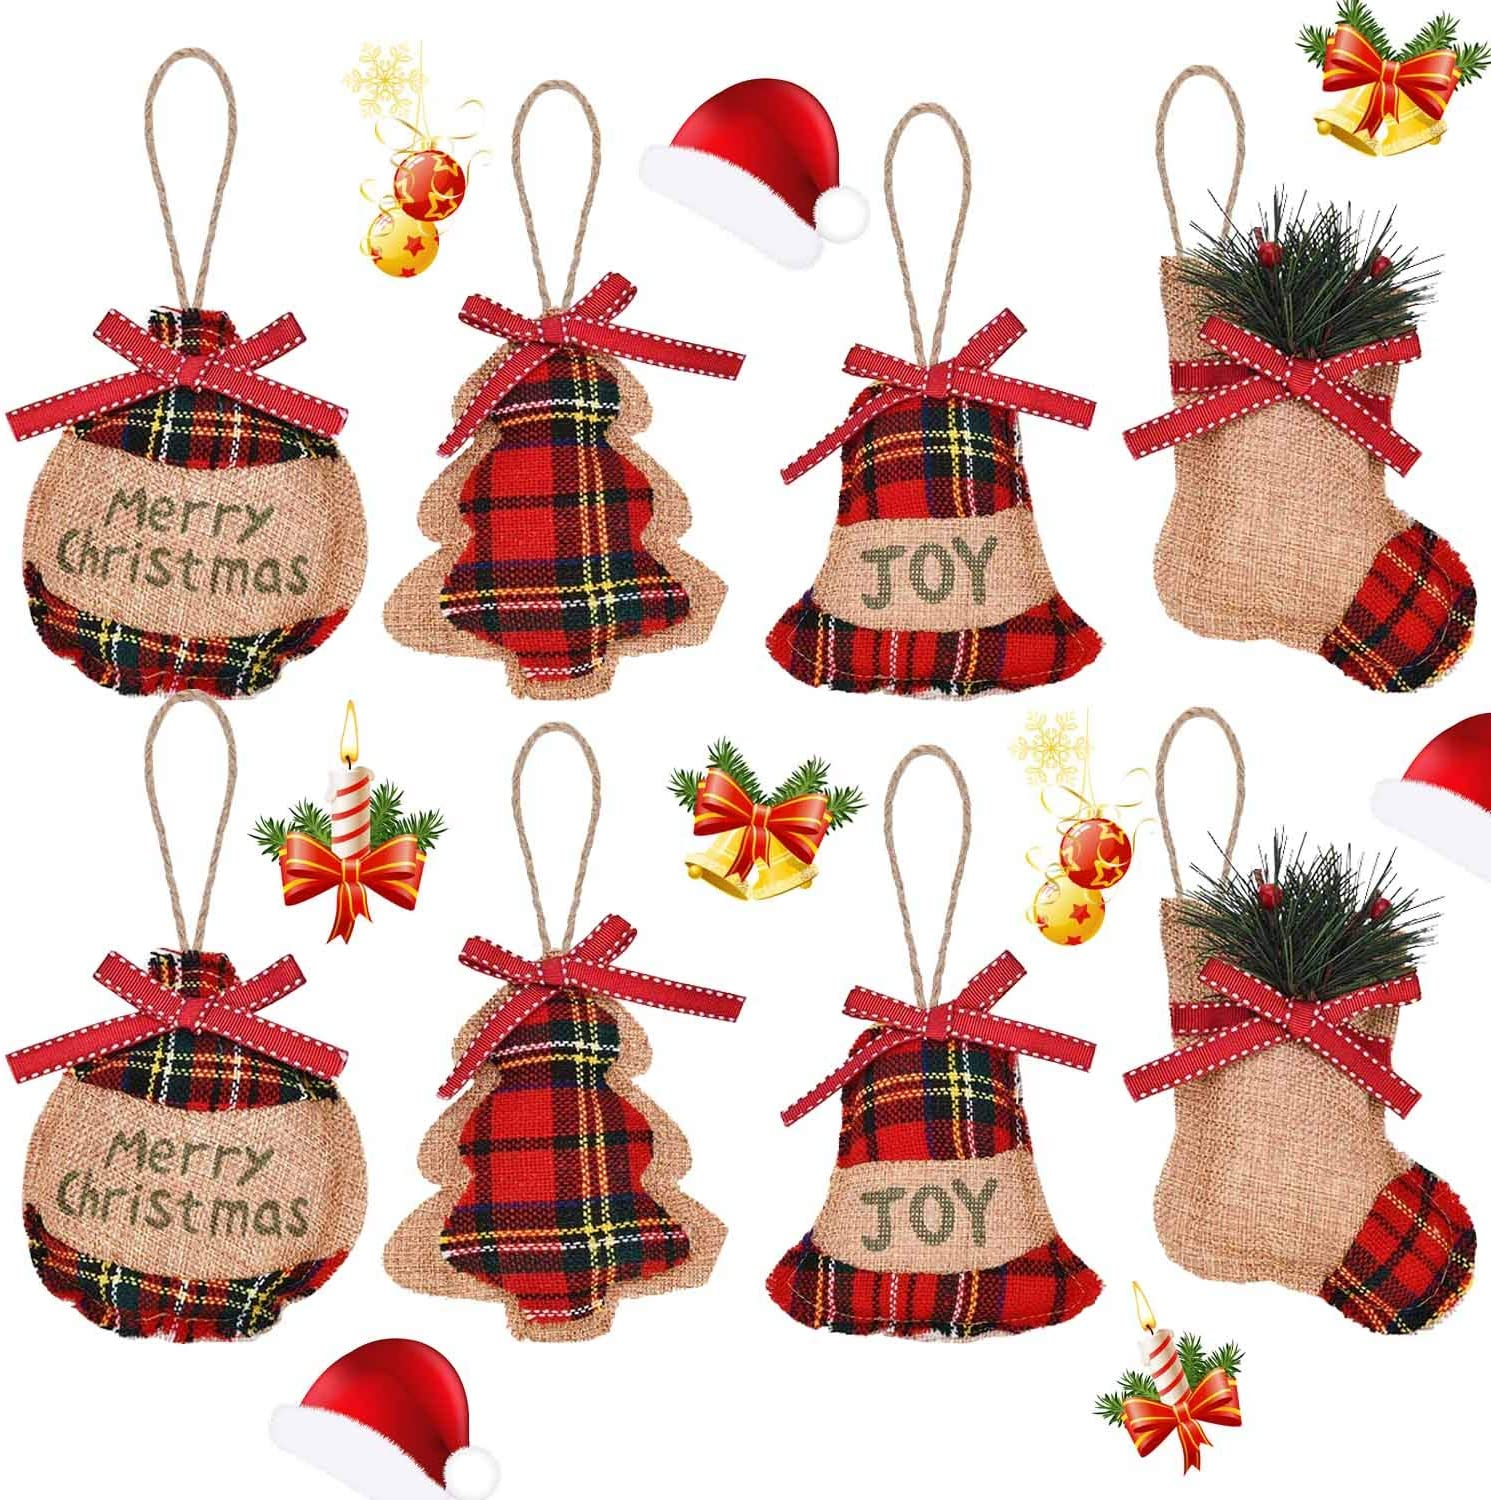 8 Pack Rustic Christmas Tree Ornaments Hanging Decorations Christmas Stocking Ball Tree Star Shapes, Plaid Burlap Country Christmas Ornaments for Christmas Holiday Party Home Decor (4 Styles)